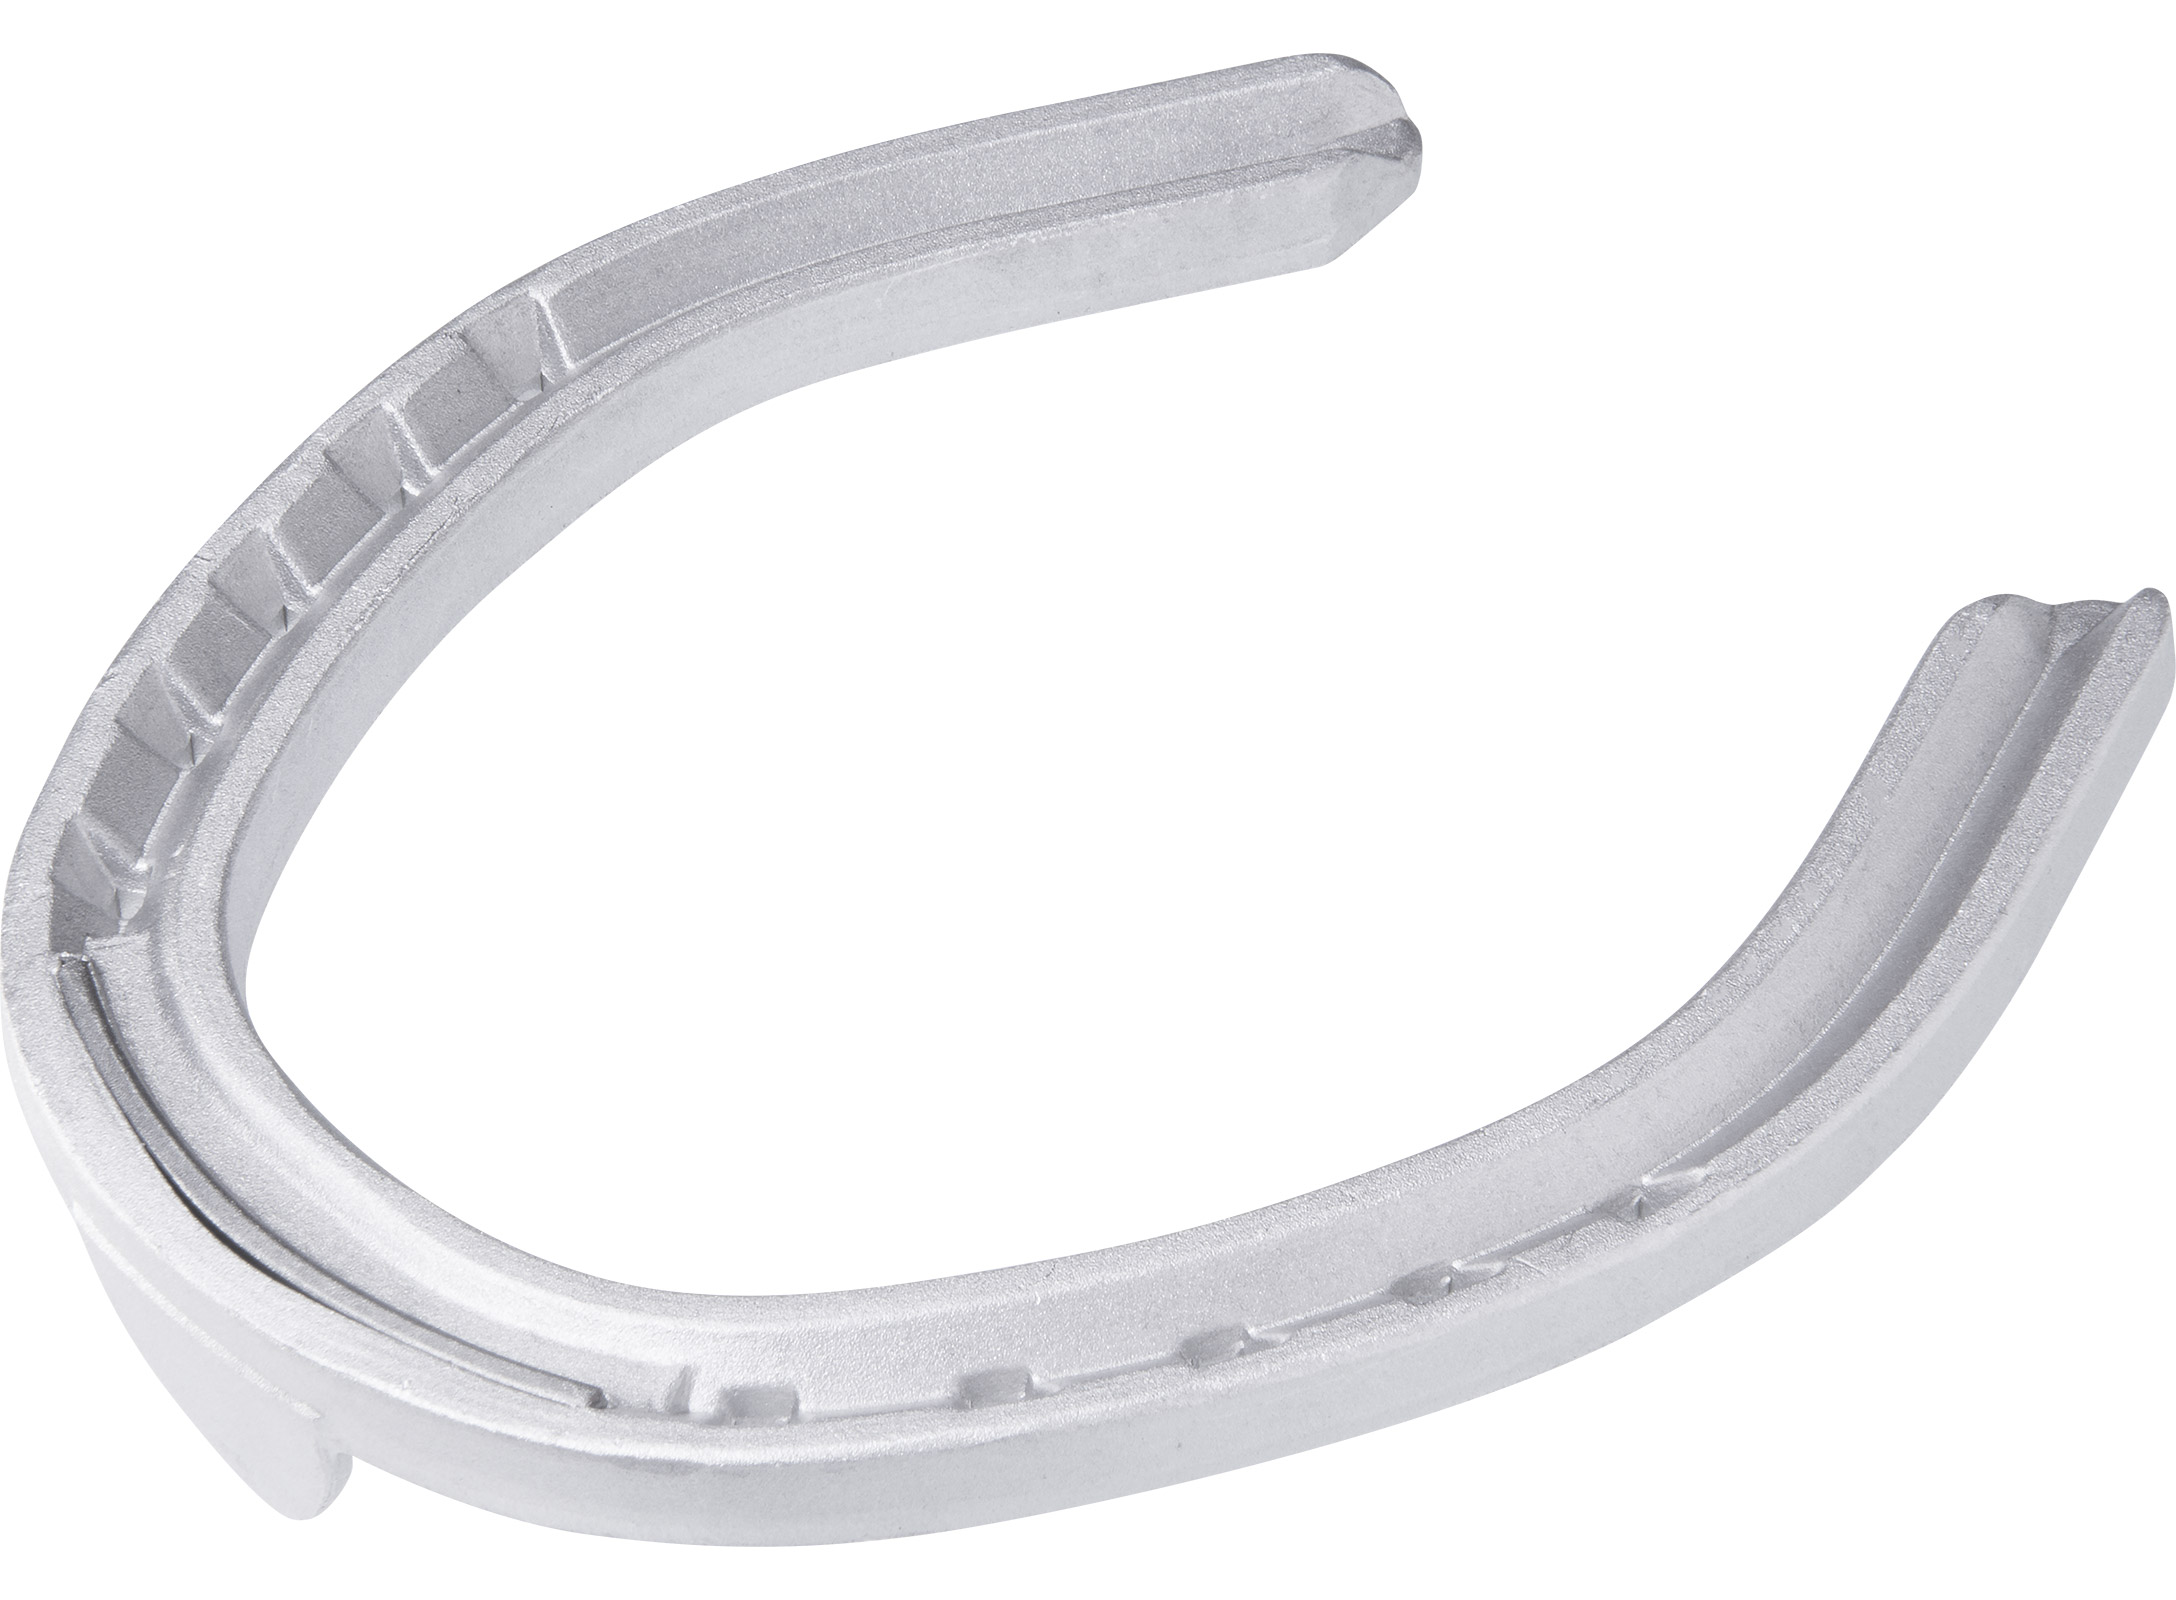 St. Croix Fullered Aluminium horseshoes, bottom side view